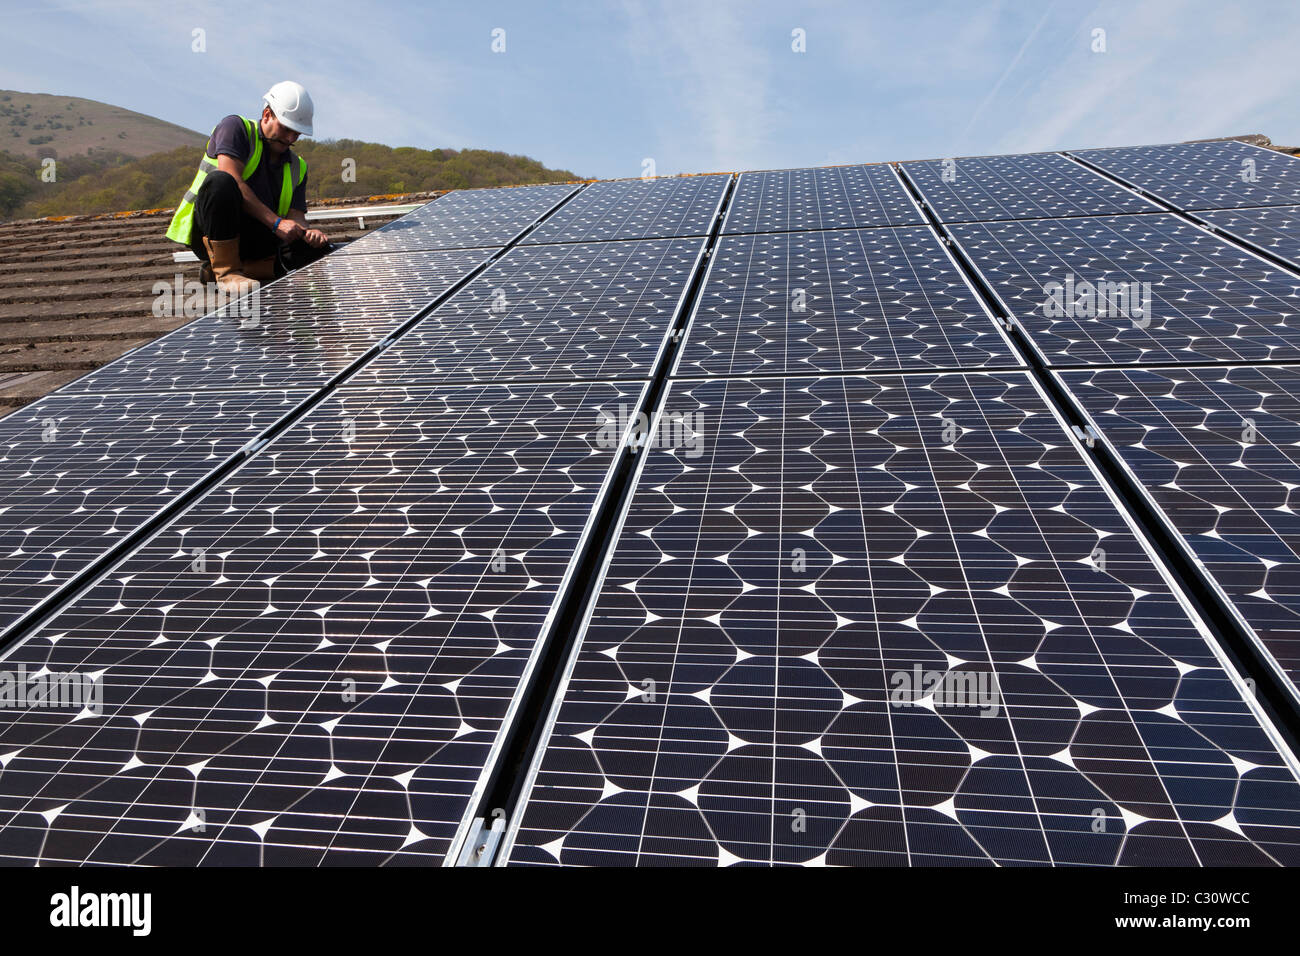 Fitting solar pv panels to a house roof Wales UK - Stock Image